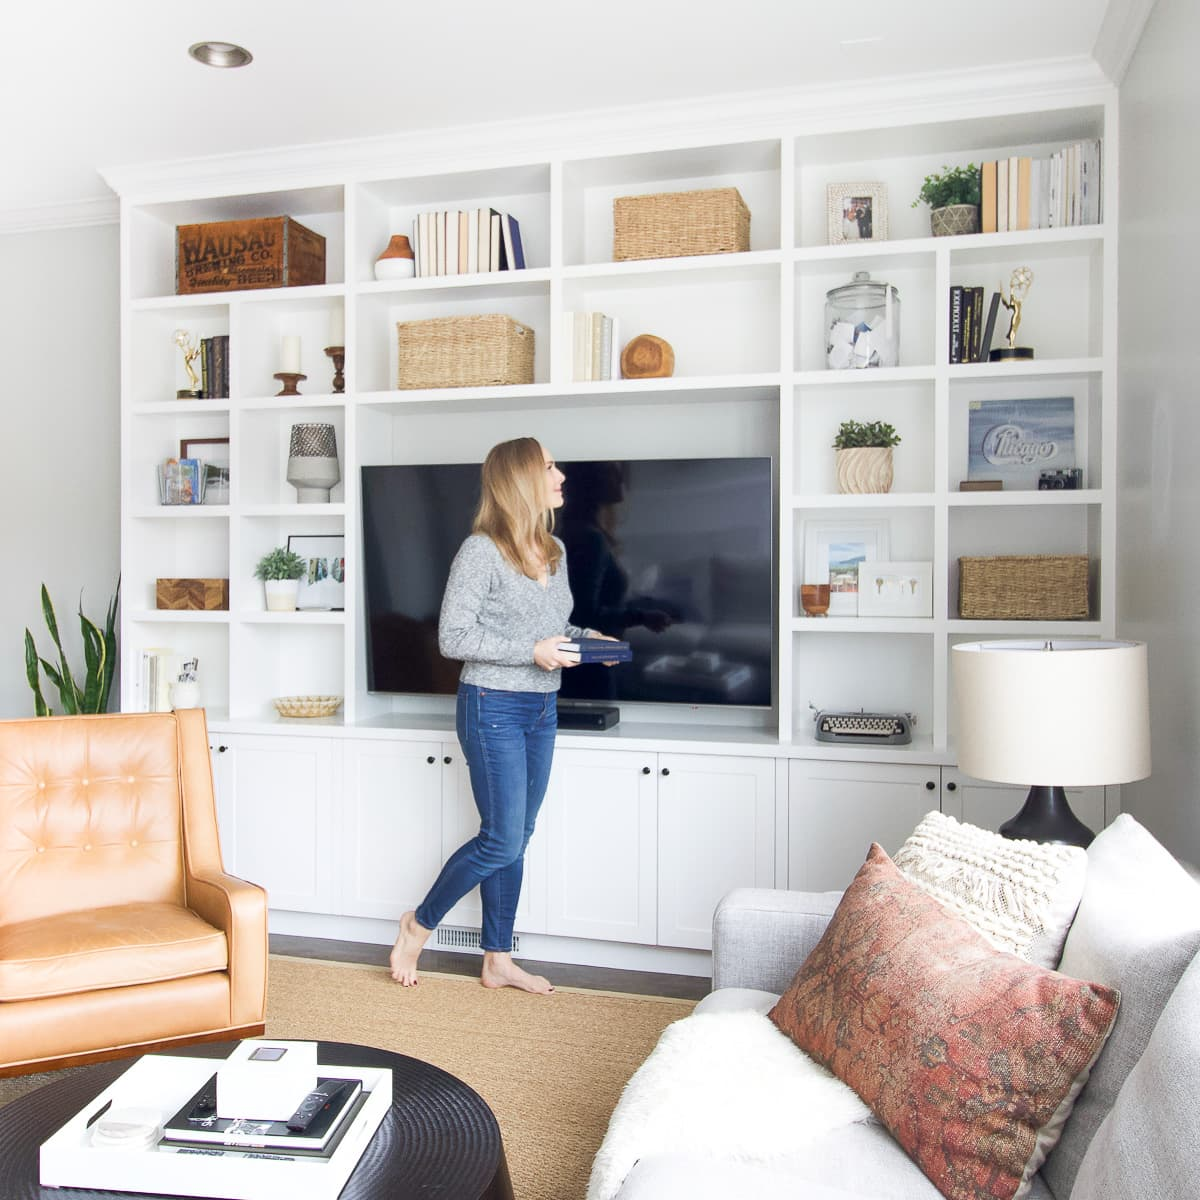 Adding books to built-ins